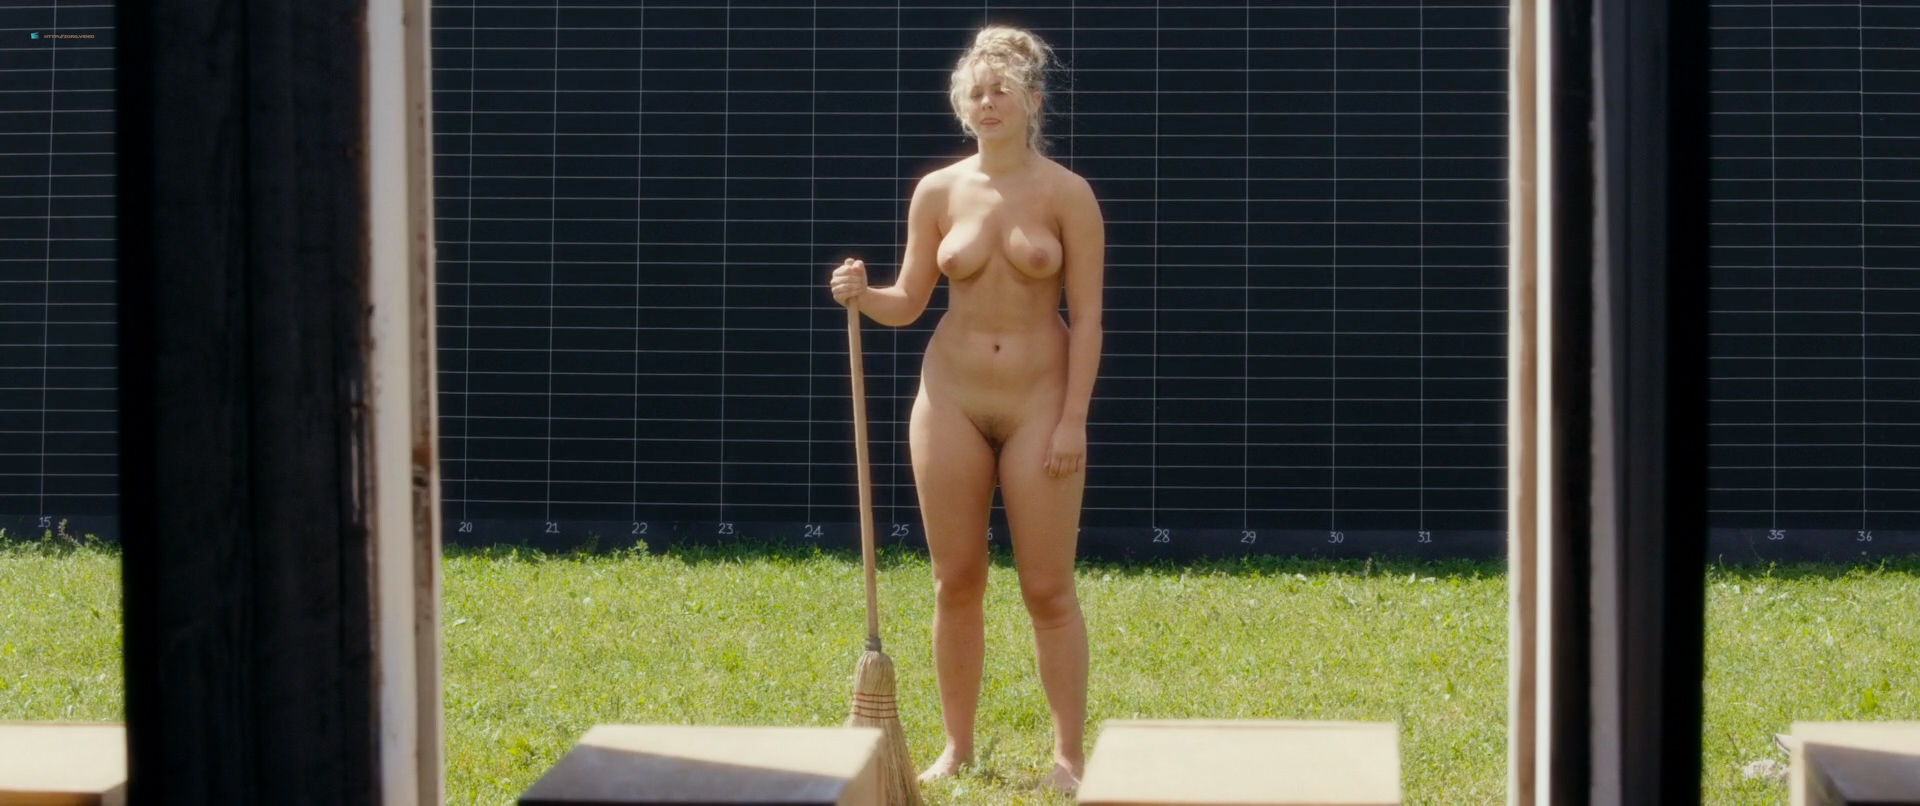 Jodi Balfour nude full frontal Meisha Lowe nude other's nude bush, butt and boobs - Eadweard (2015) HD 1080p WebDl (4)